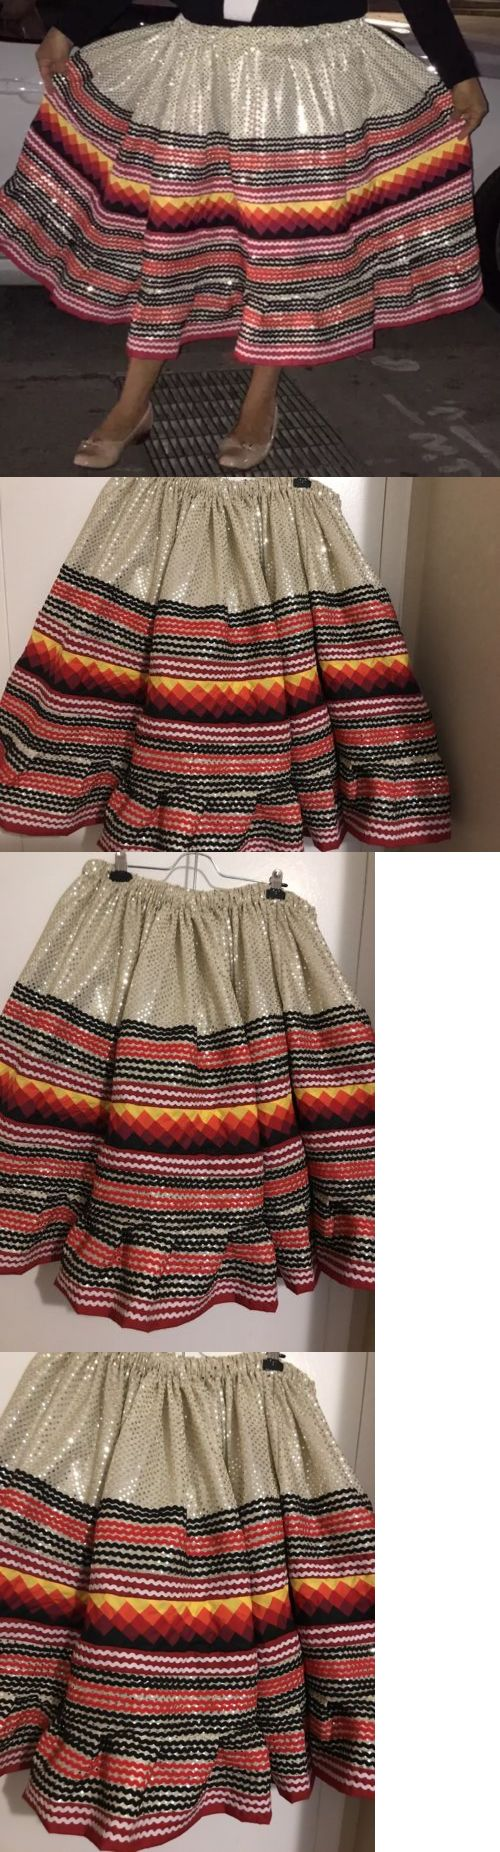 Native American 163146: Seminole Patchwork Skirt 3 Yards Of Patchwork With Gold Sequins Fabric! New?? -> BUY IT NOW ONLY: $399.99 on eBay!